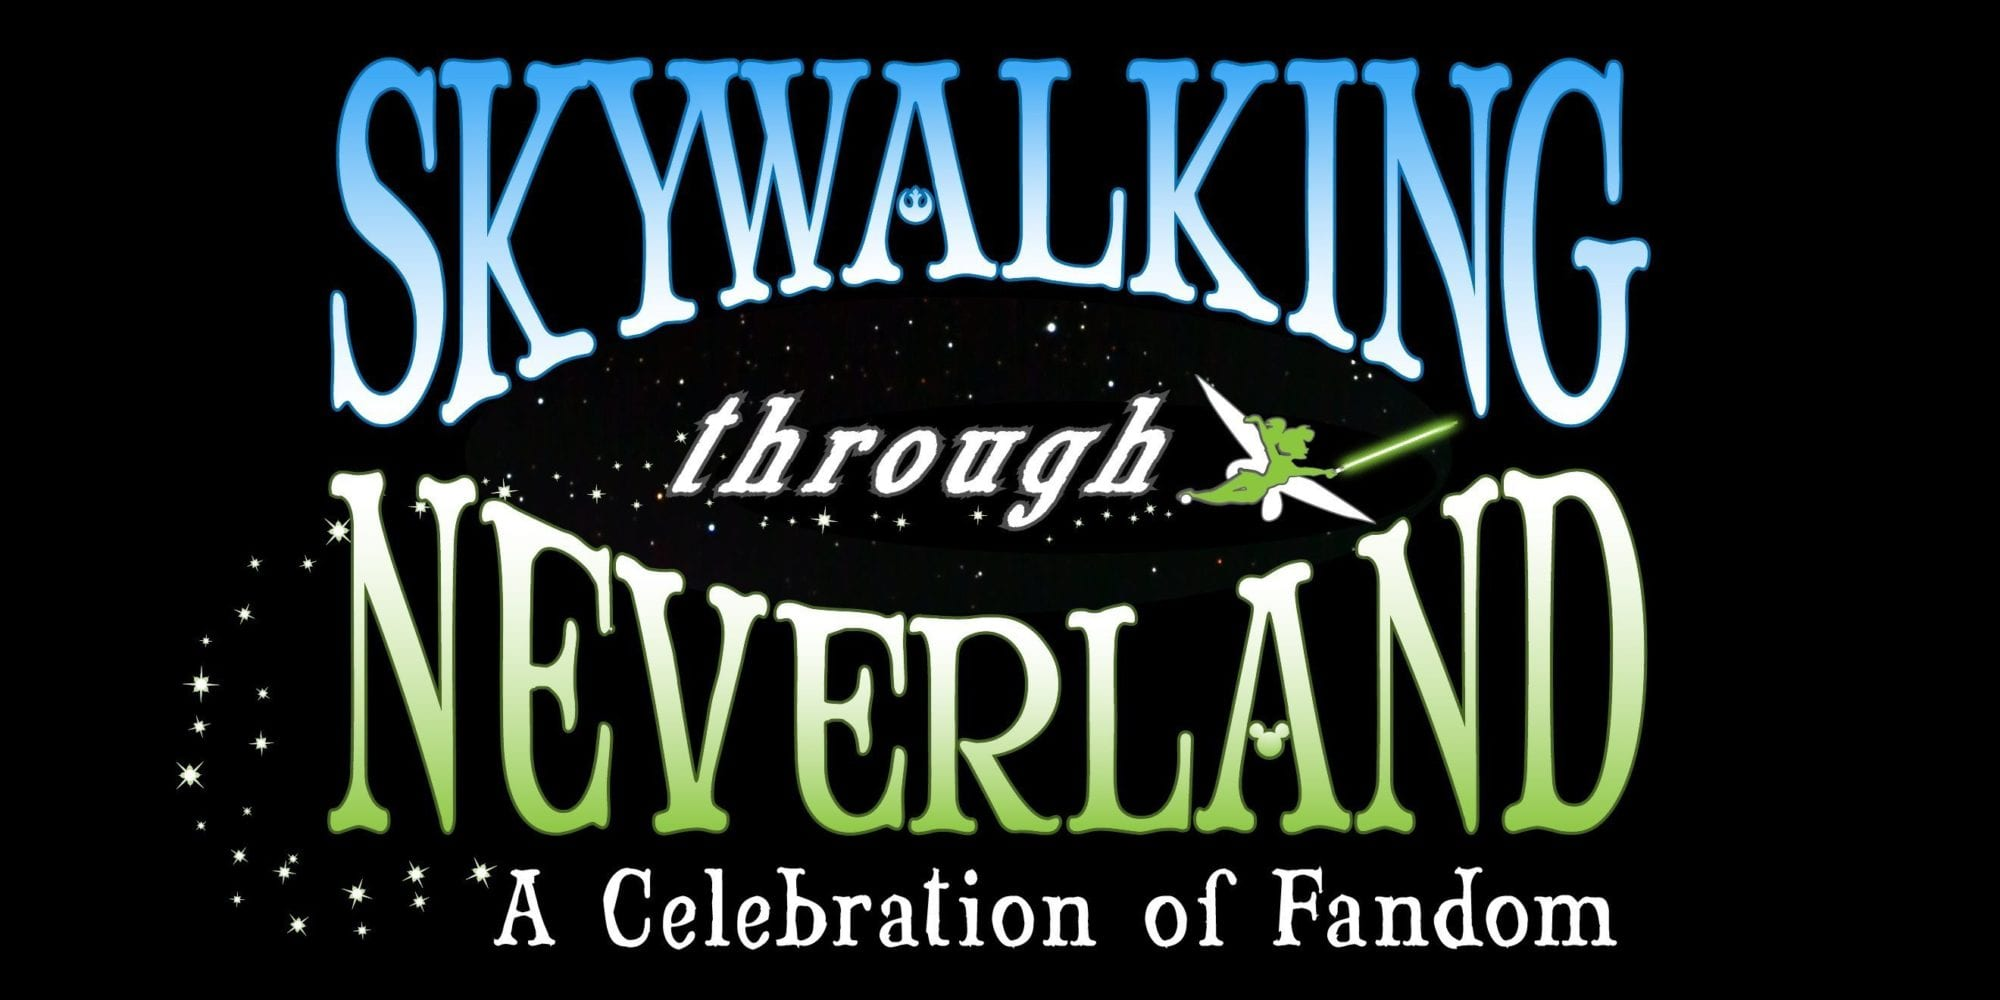 ANNOUNCEMENT: Welcome Skywalking Through Neverland to RetroZap!